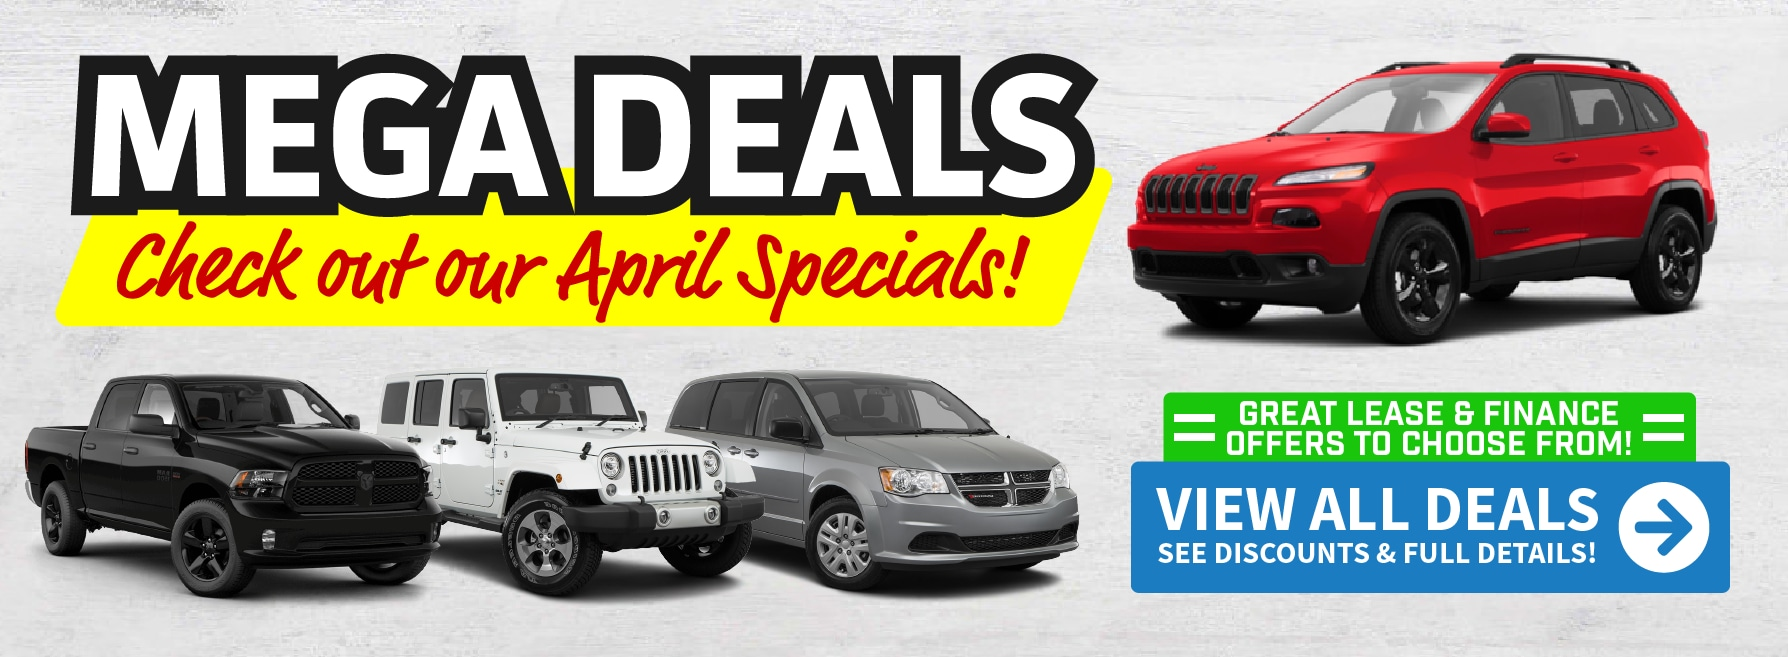 dodge ltd fiat bayview jeep chrysler ram deals htm lease specials new